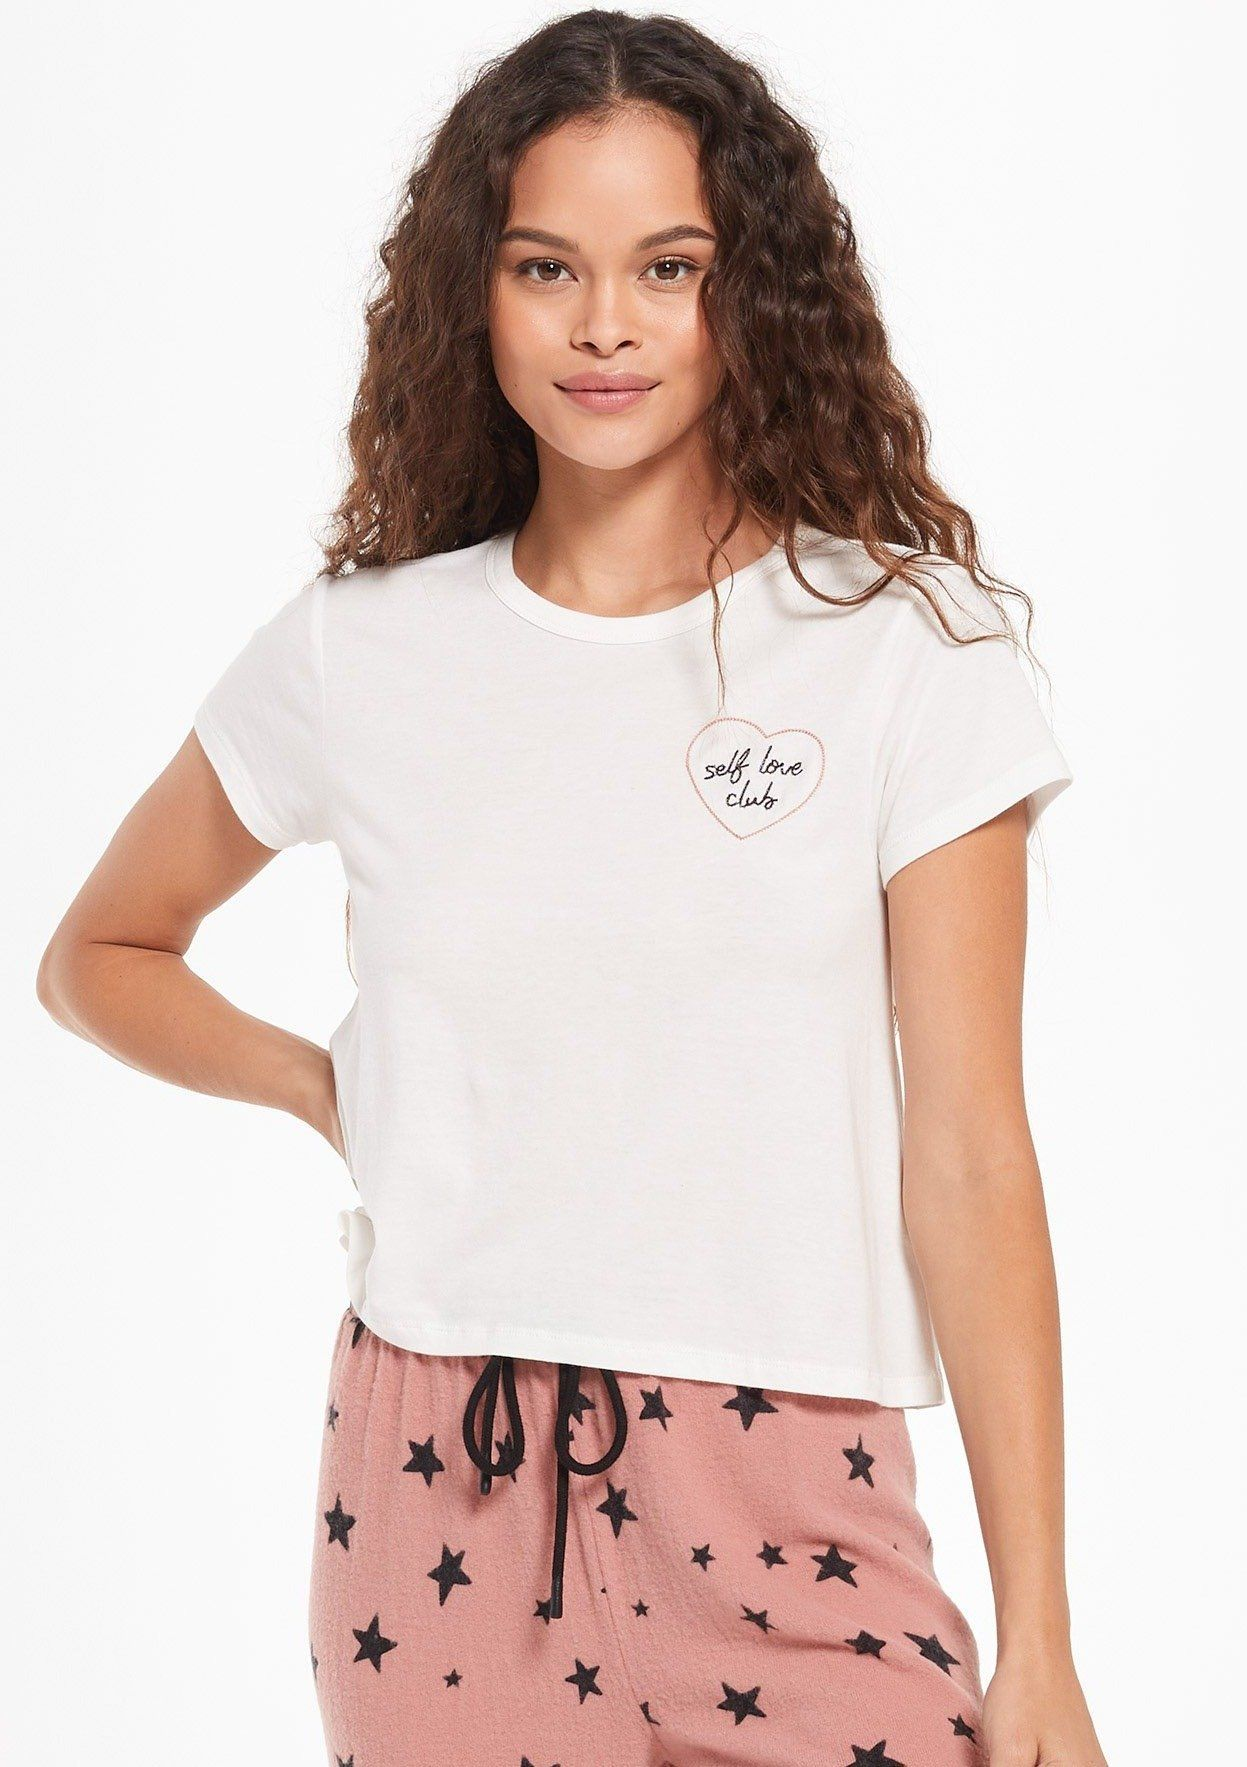 """Join the 'Self Love Club' in Z Supply's AMOR SWING TEE in White. Made using their super soft Cotton Modal Jersey knit fabric, this tee is the perfect mix of comfort and style. It features a heart embroidery with the message """"Self Love Club"""" and matches so many Z Supply Lounge styles."""